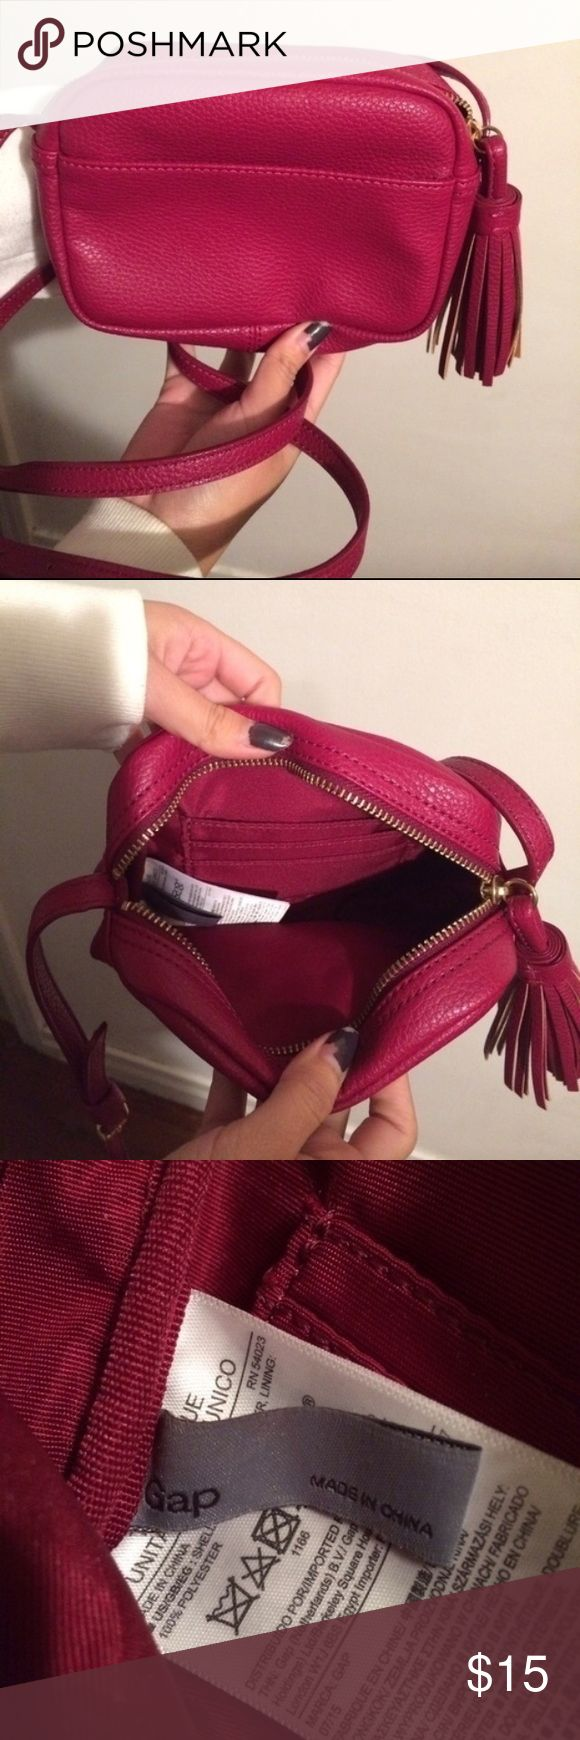 Gap purse Has a tassle Pocket in the insides and the outside  Adjustable straps  Really great condition! No rips  #gap #purses GAP Bags Crossbody Bags